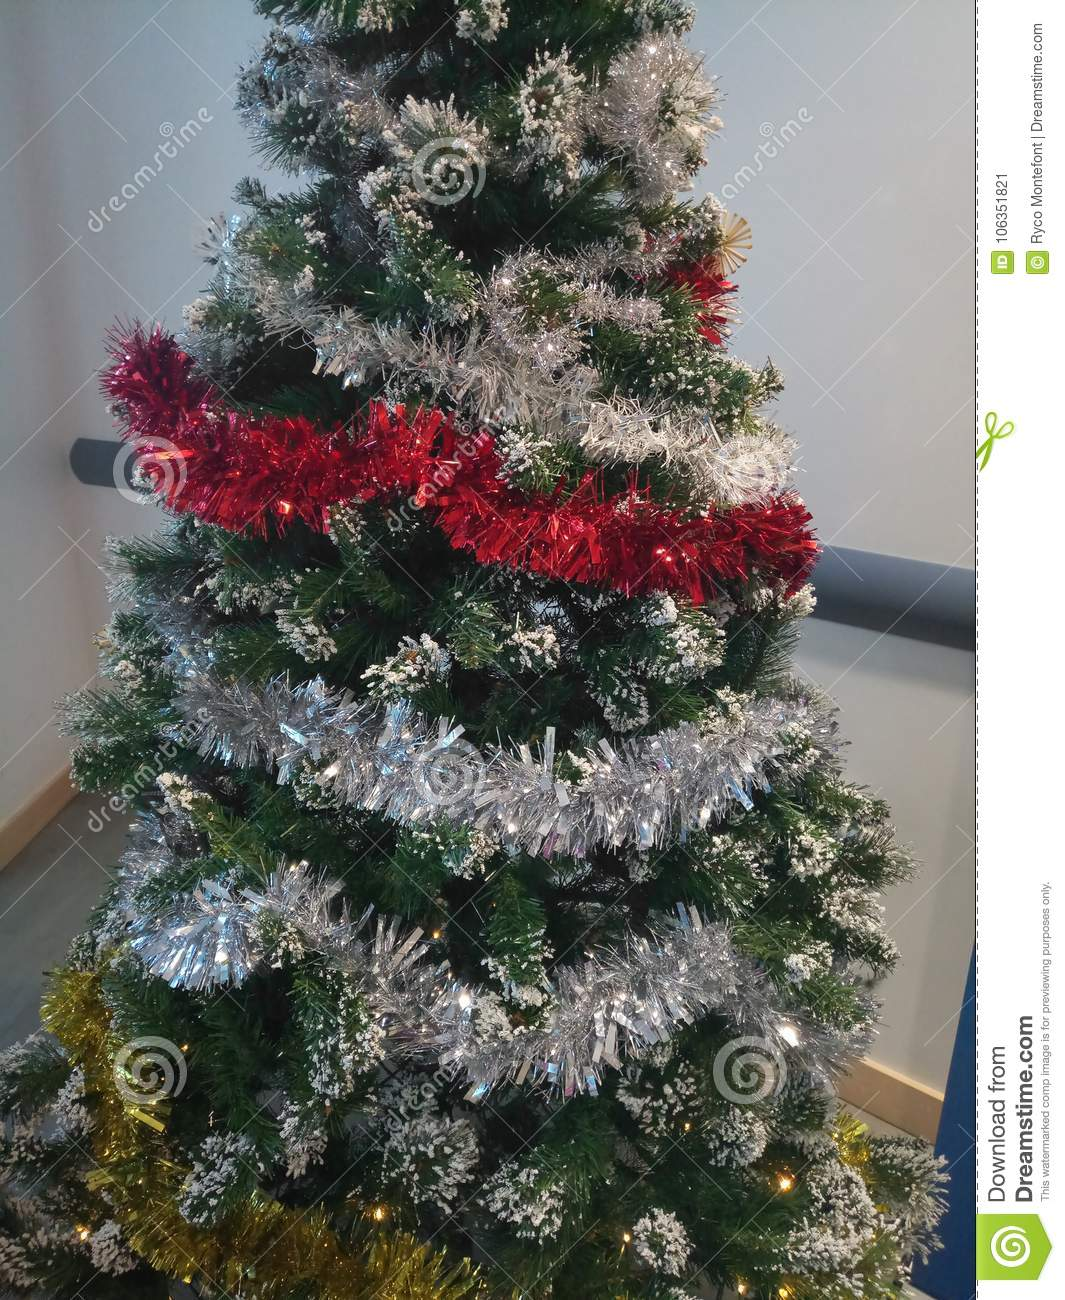 Christmas Tree Tinsel.Decorated Christmas Tree With Tinsel And Fake Snow Stock